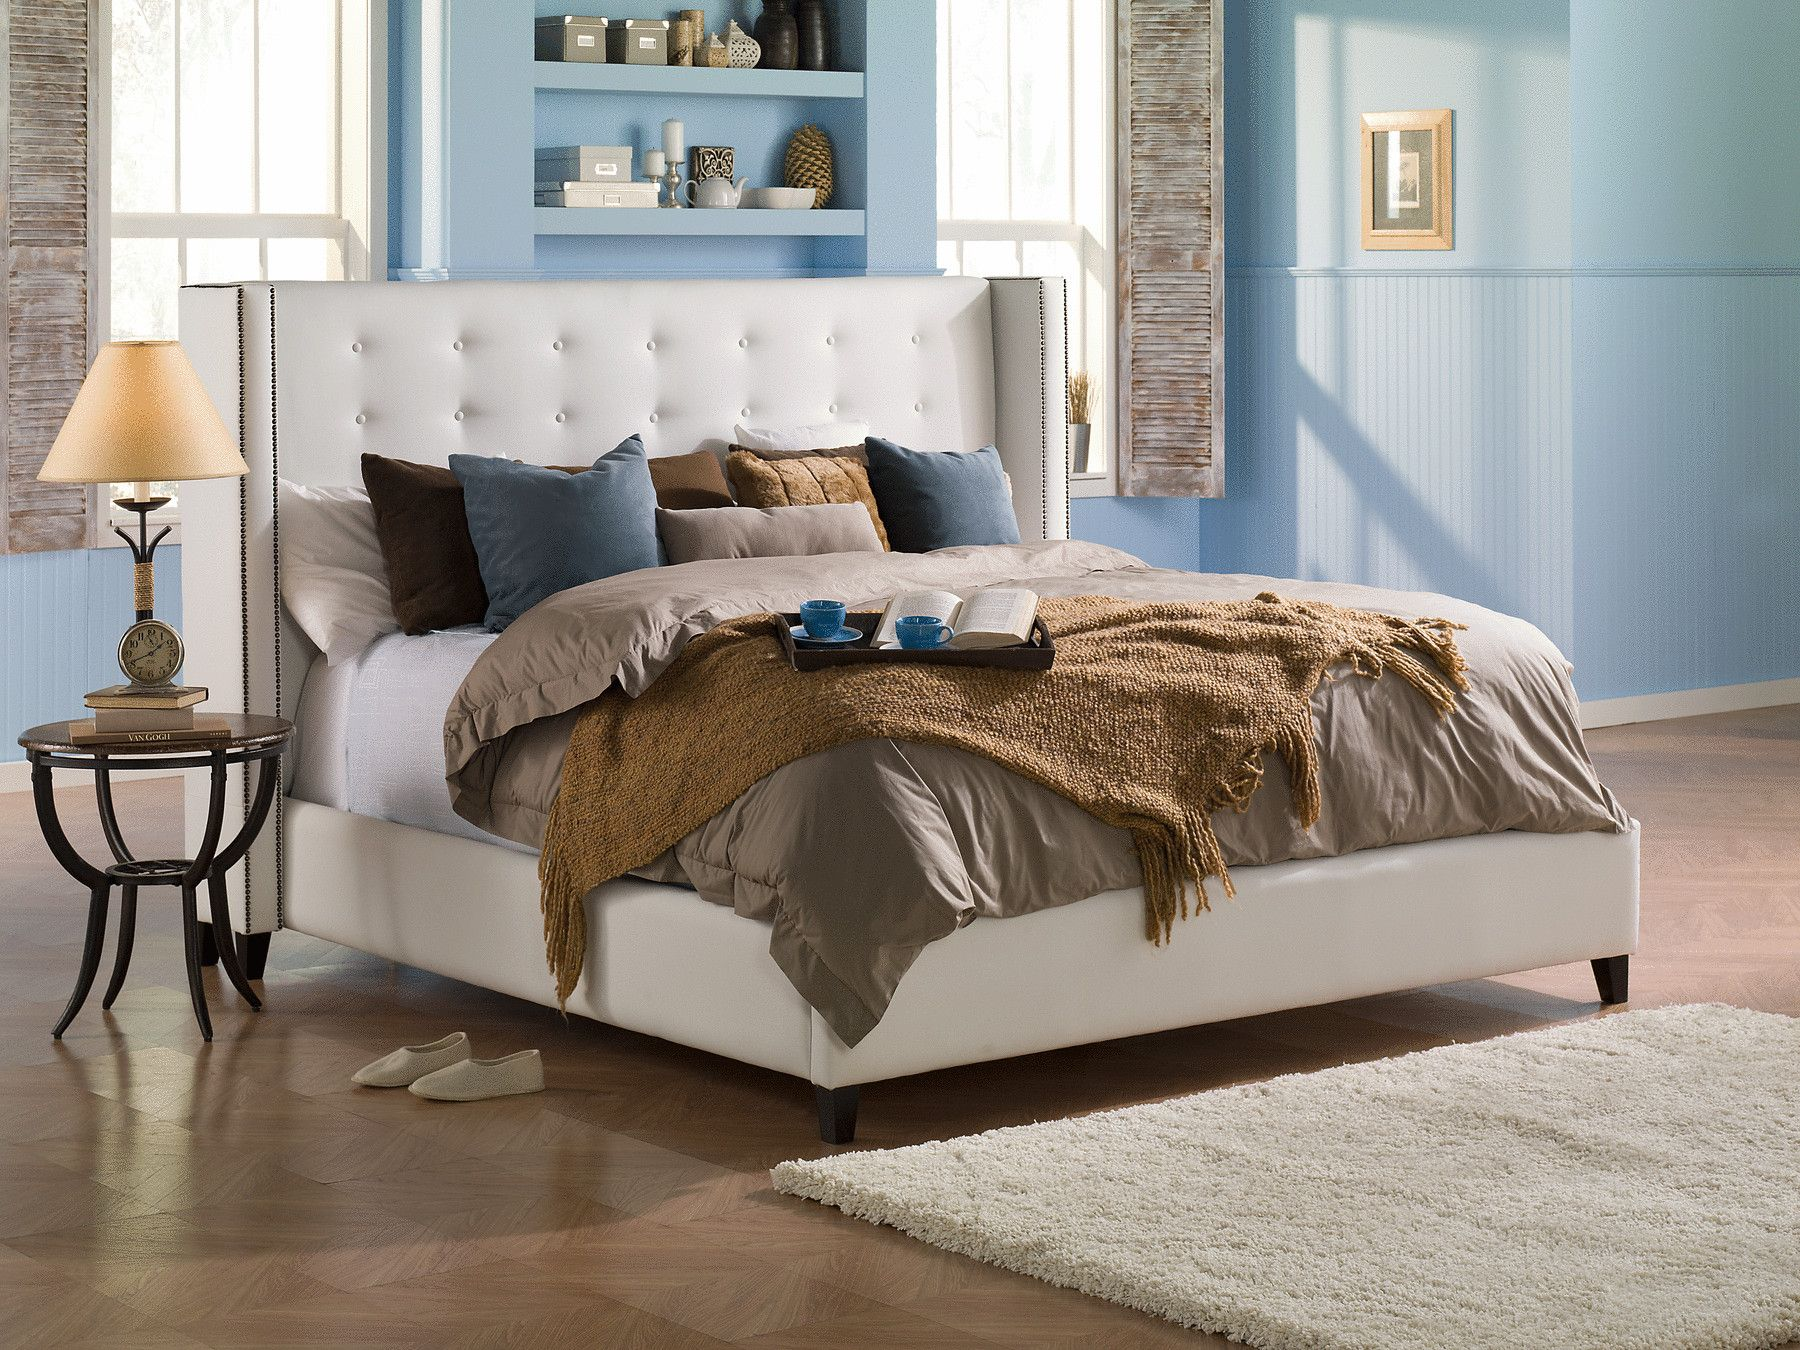 Palliser Bedroom Furniture | house | Pinterest | Bedrooms and House